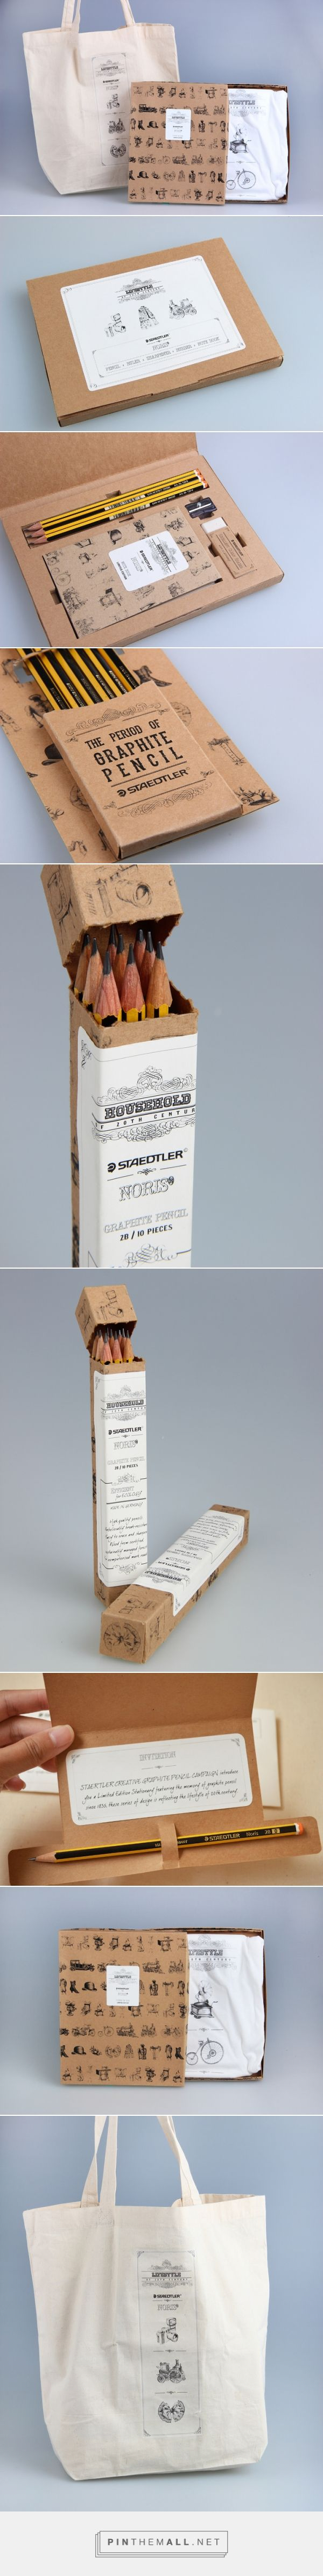 Staedtler Limited Edition packaging, Personalised stationary gift set, maybe?